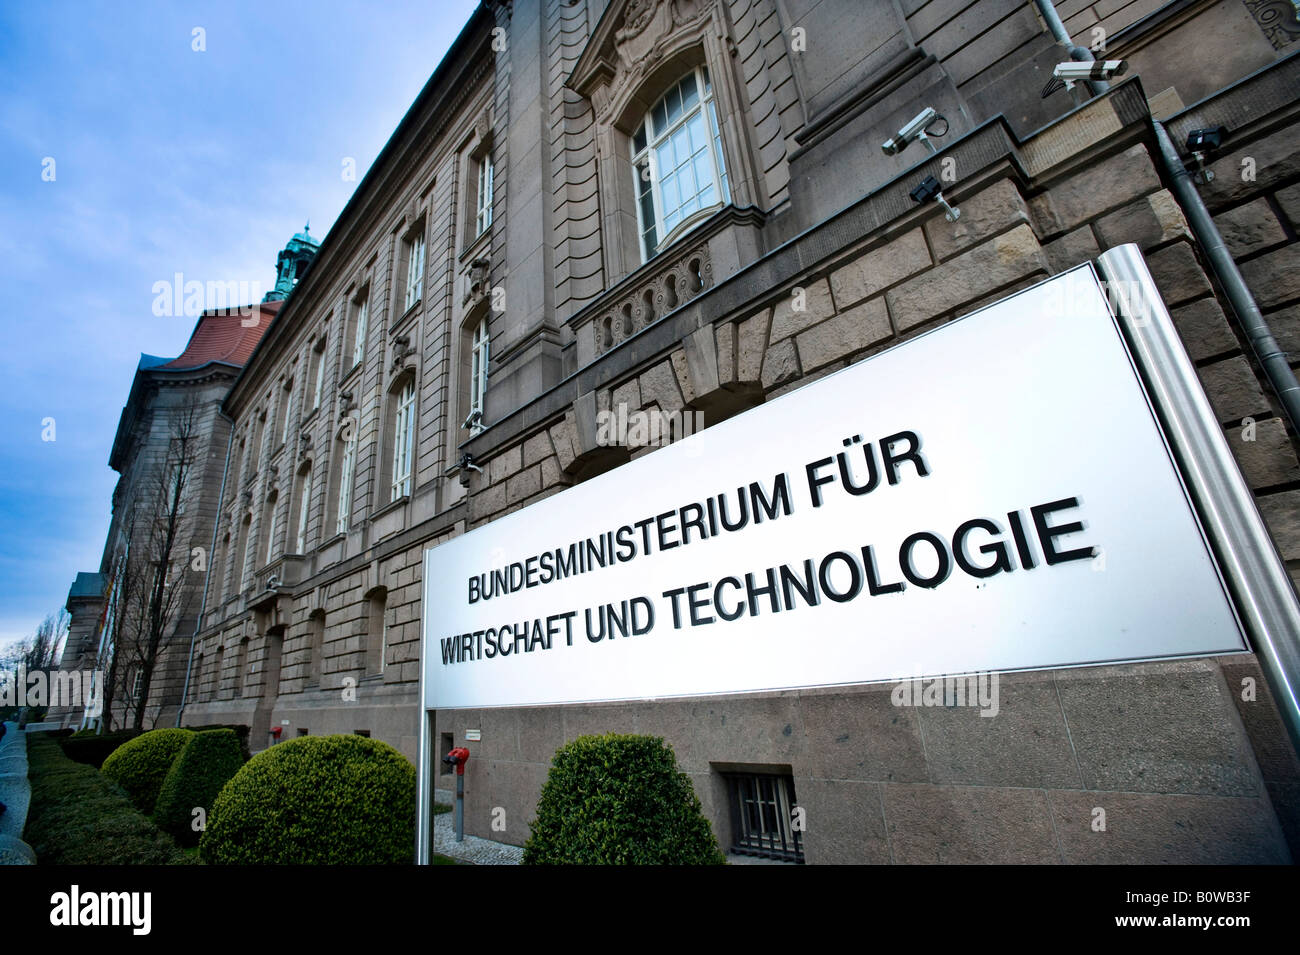 Federal Ministry of Economics and Technology, Berlin, Germany - Stock Image